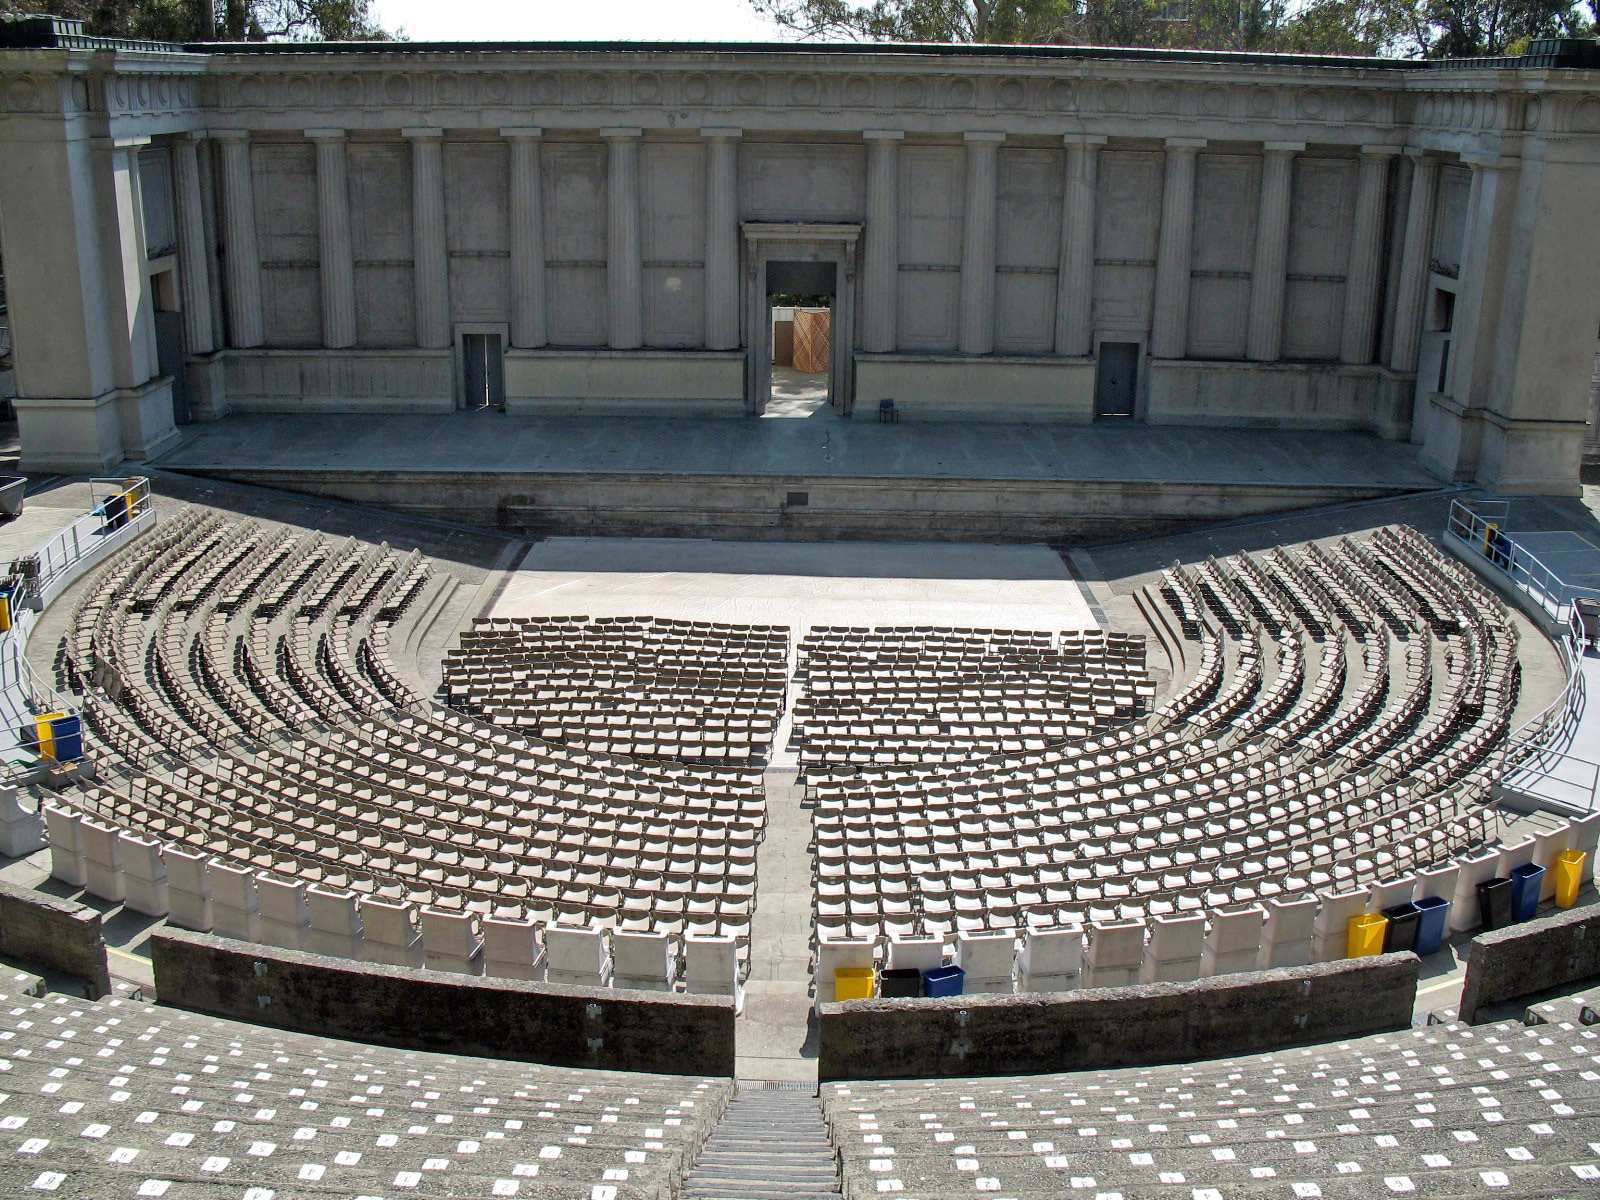 The Hearst Greek Theater at University of California, designed by Julia Morgan (1903)